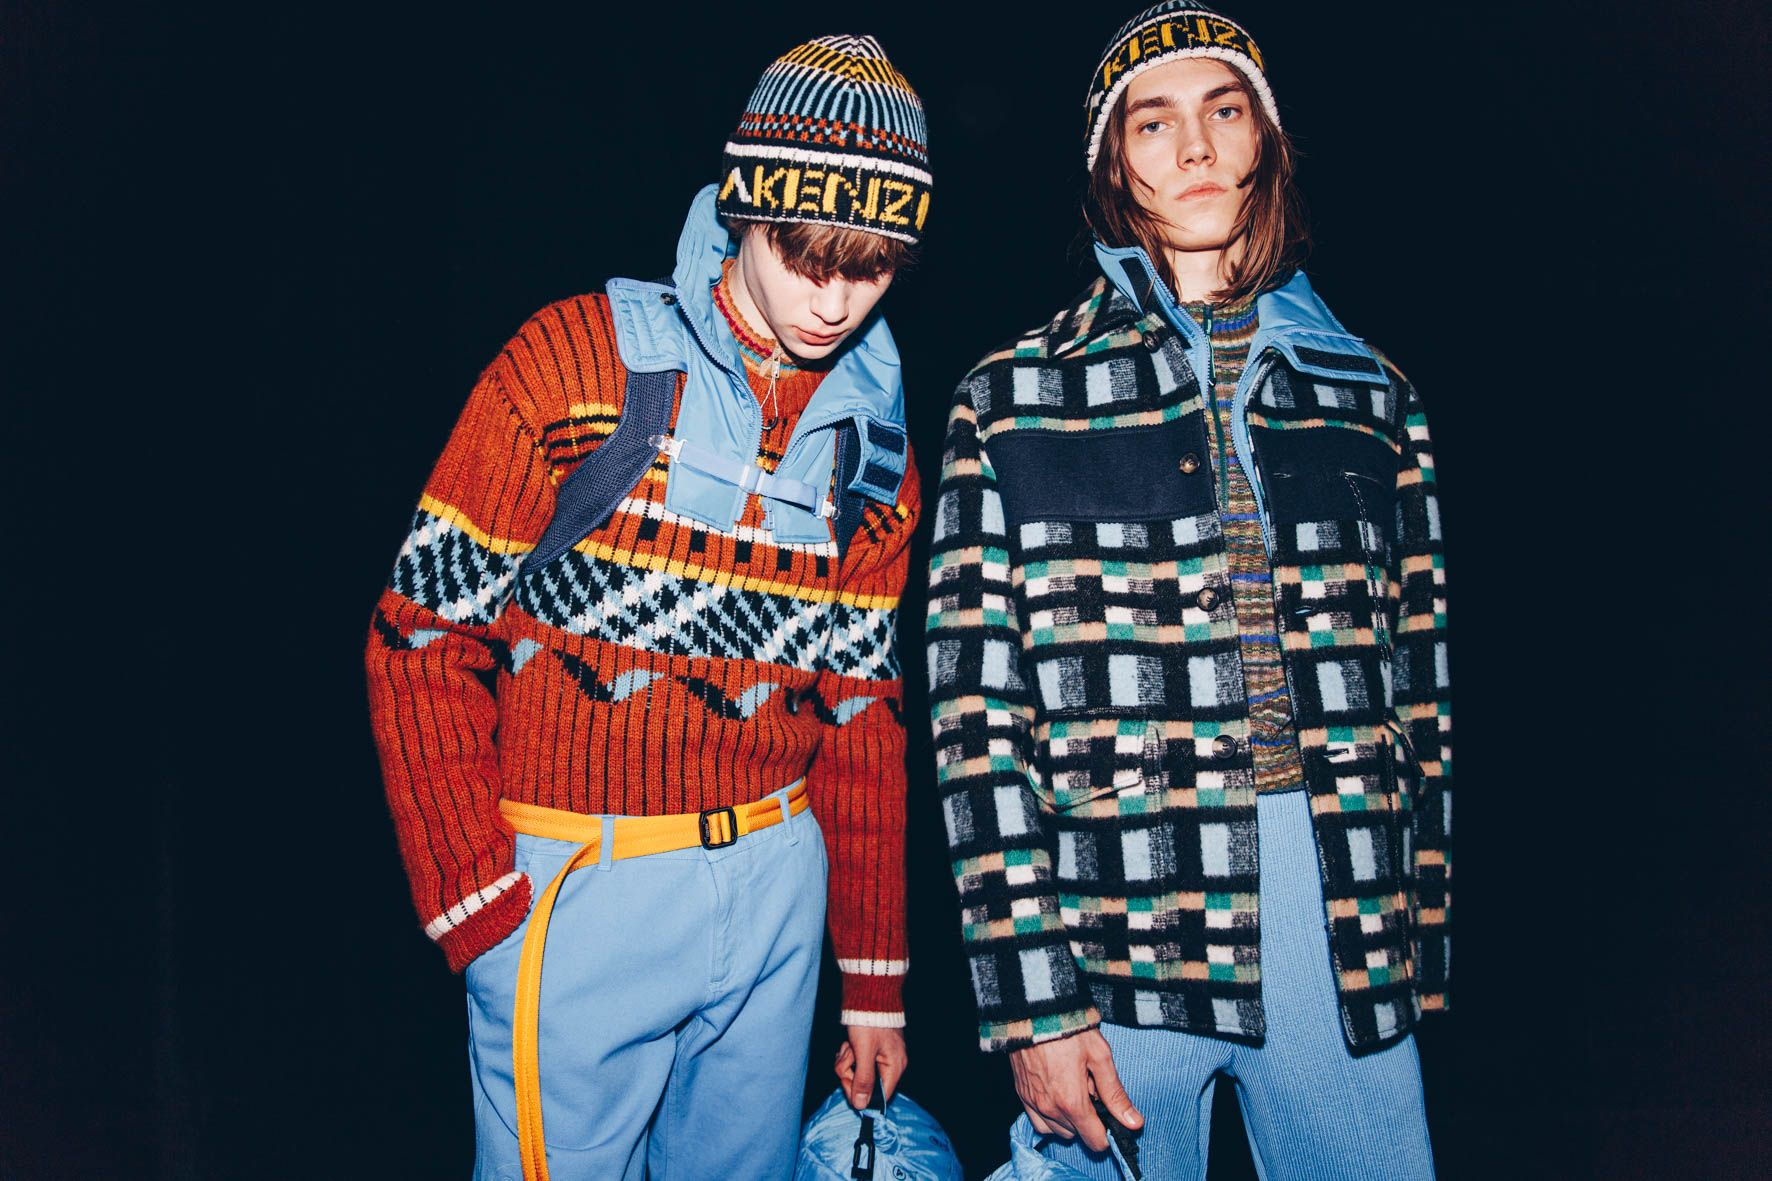 Kenzo - Paris Fashion Week - FW 19 -Backstage Photographié par Robin Joris Dullers